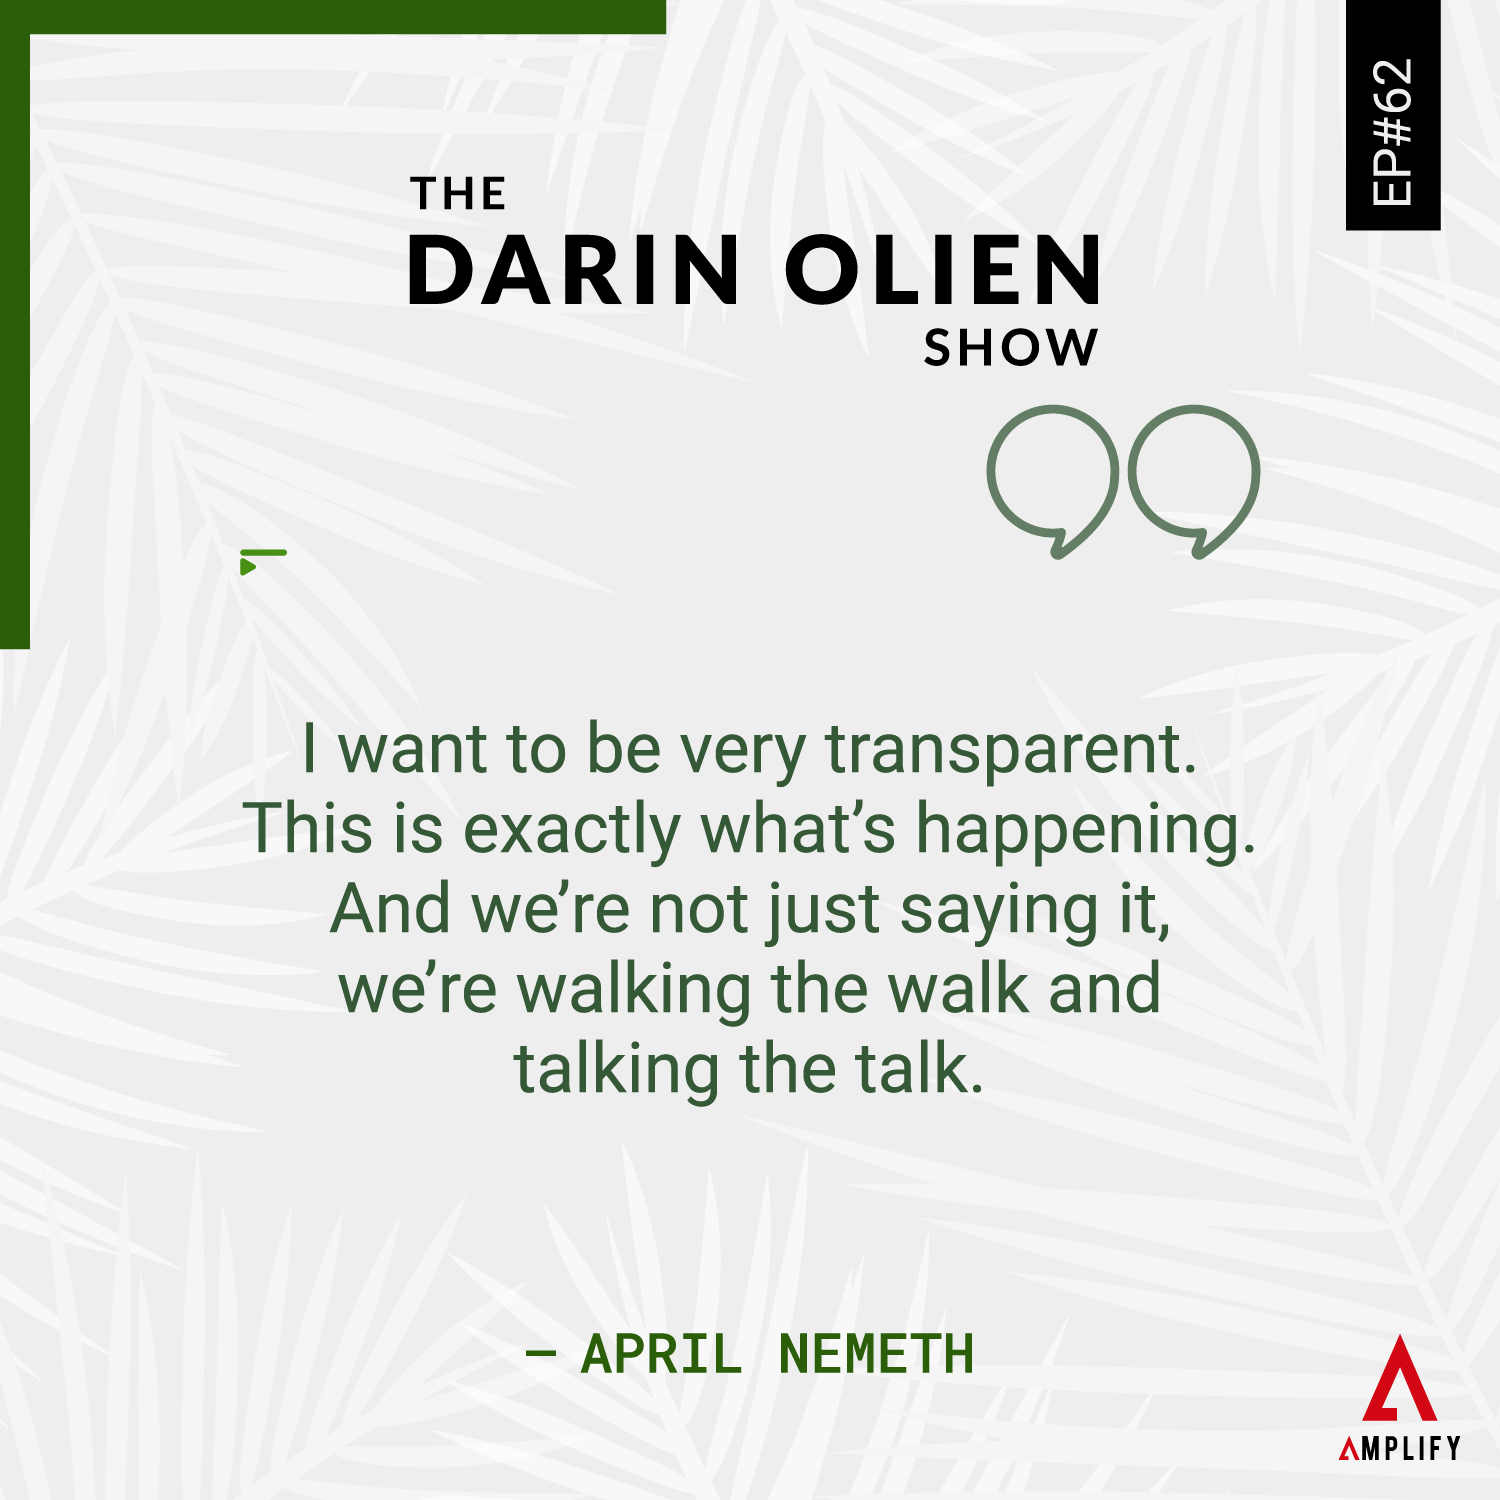 Quote: I want to be very transparent. This is exactly what's happening. And we're not just saying it, we're walking the walk and talking the talk.